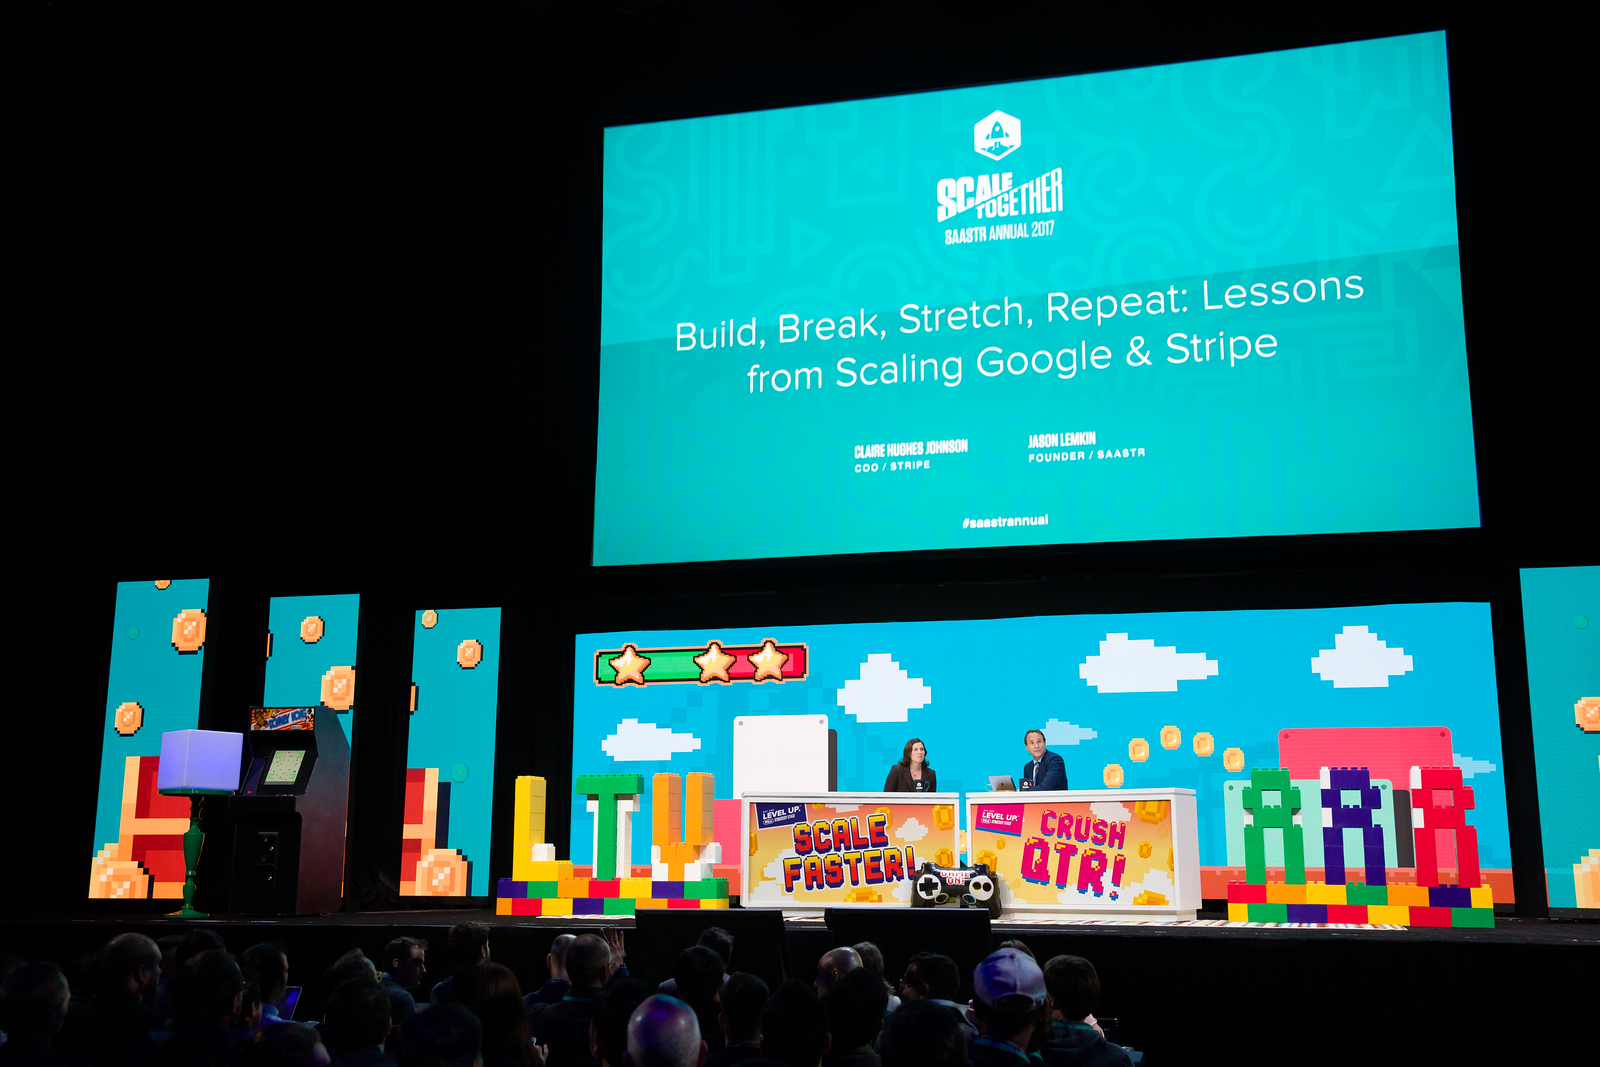 Build, Break, Stretch, Repeat: Lessons from Scaling Google & Stripe  Claire Hughes Johnson COO / STRIPE Jason Lemkin FOUNDER / SAASTR